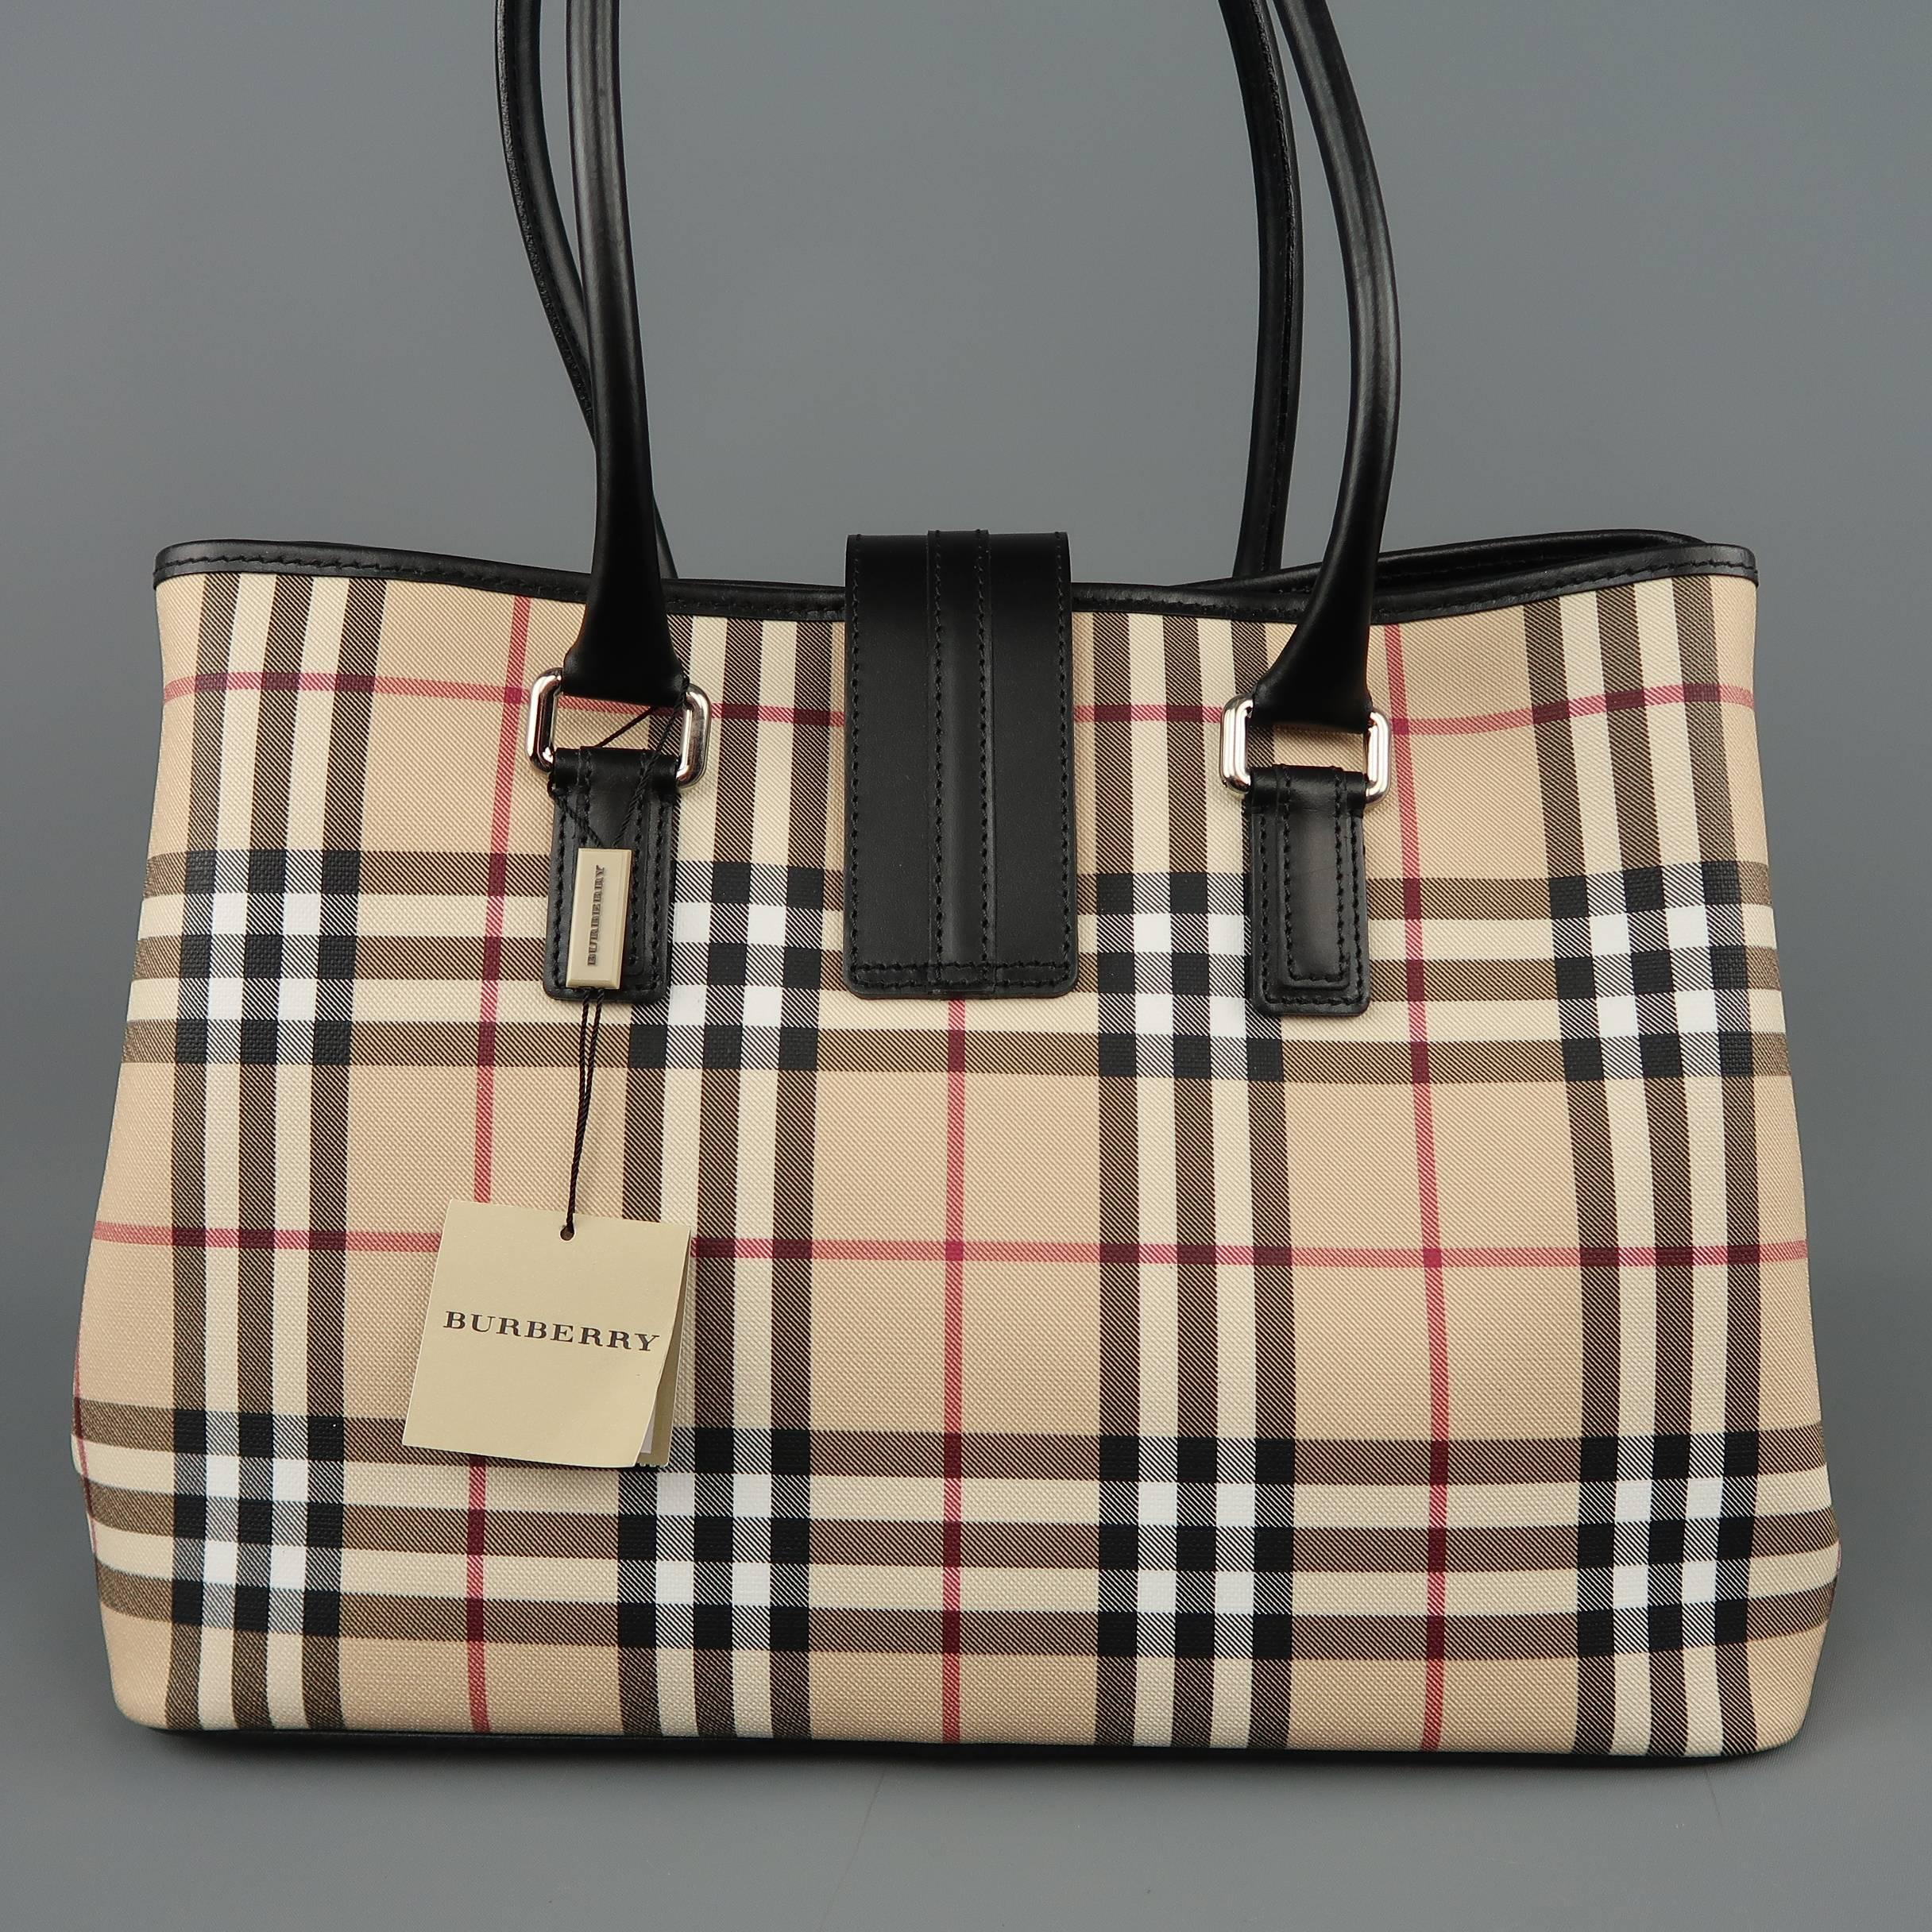 24b766c8fe8 New BURBERRY Handbag - Beige Plaid Coated Canvas and Black Leather Bag Tote  at 1stdibs